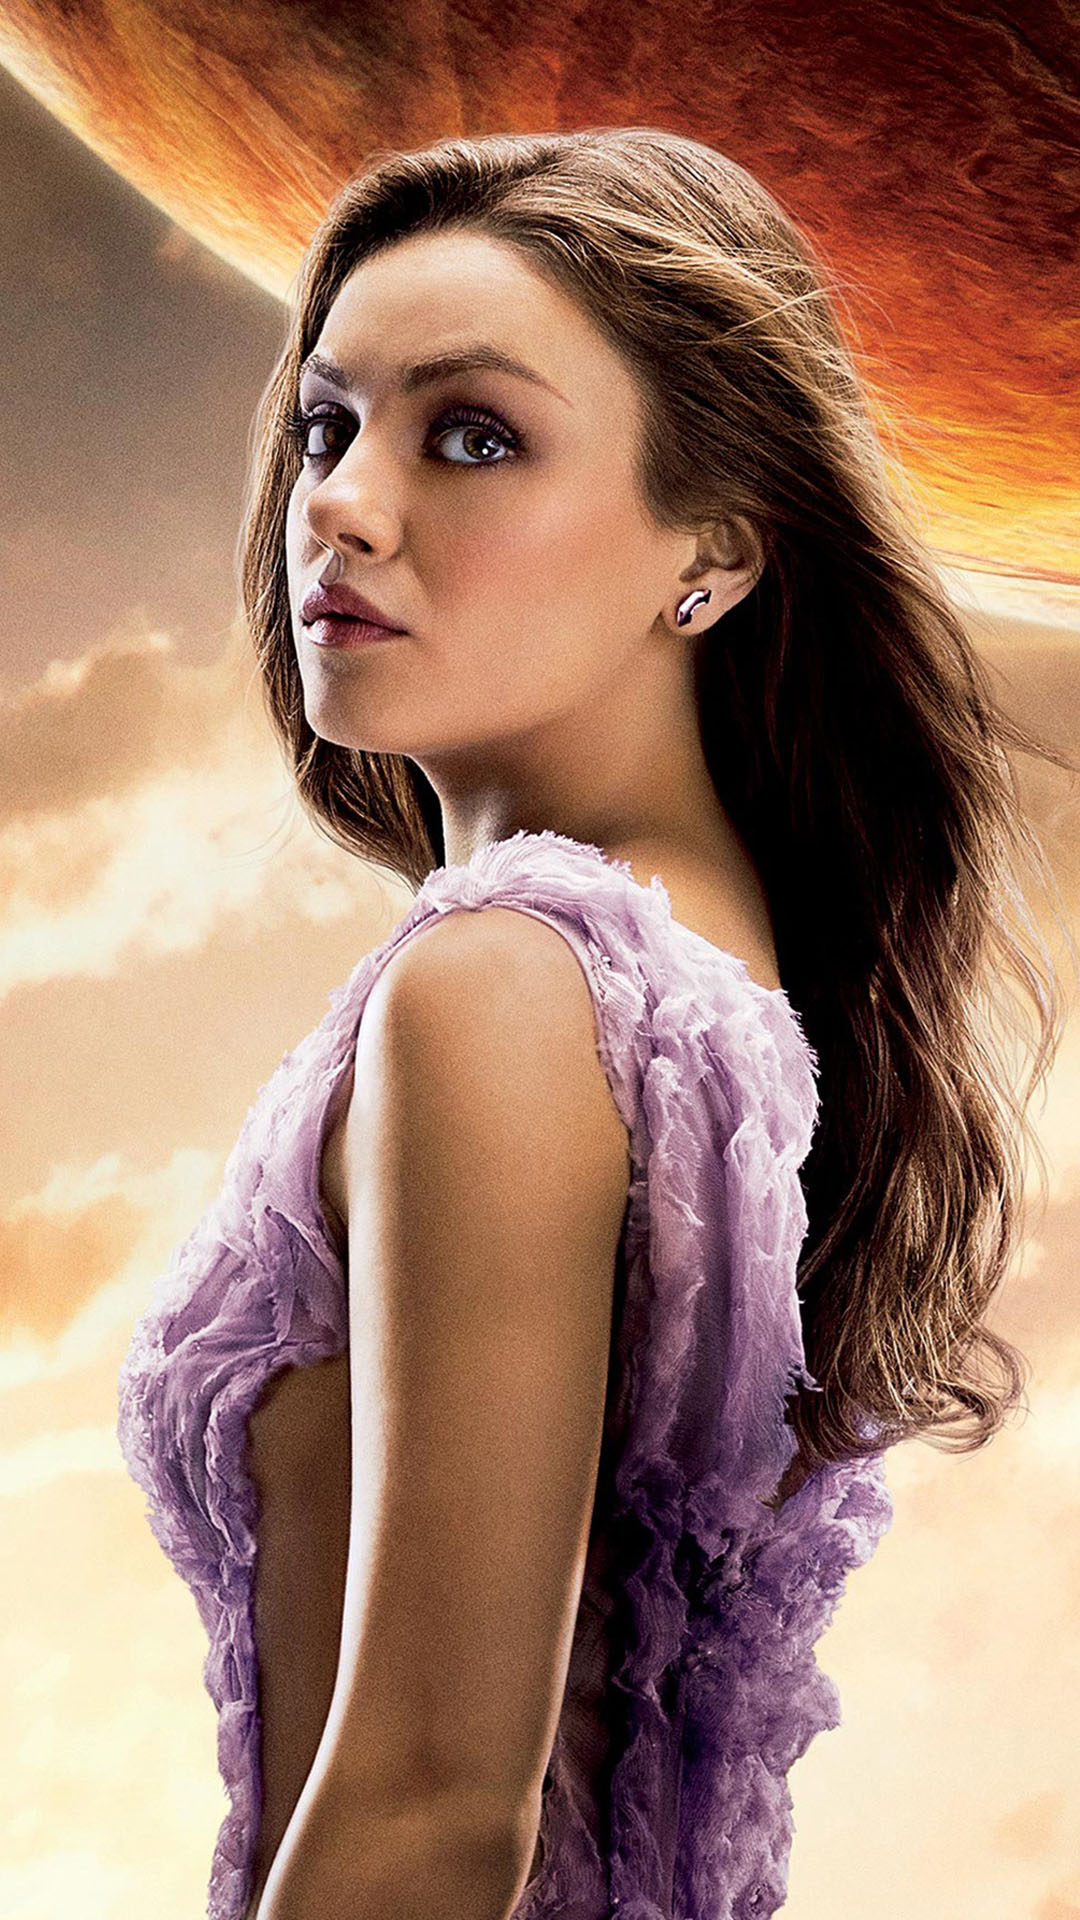 mila kunis jupiter ascending iphone 6 / 6 plus and iphone 5/4 wallpapers